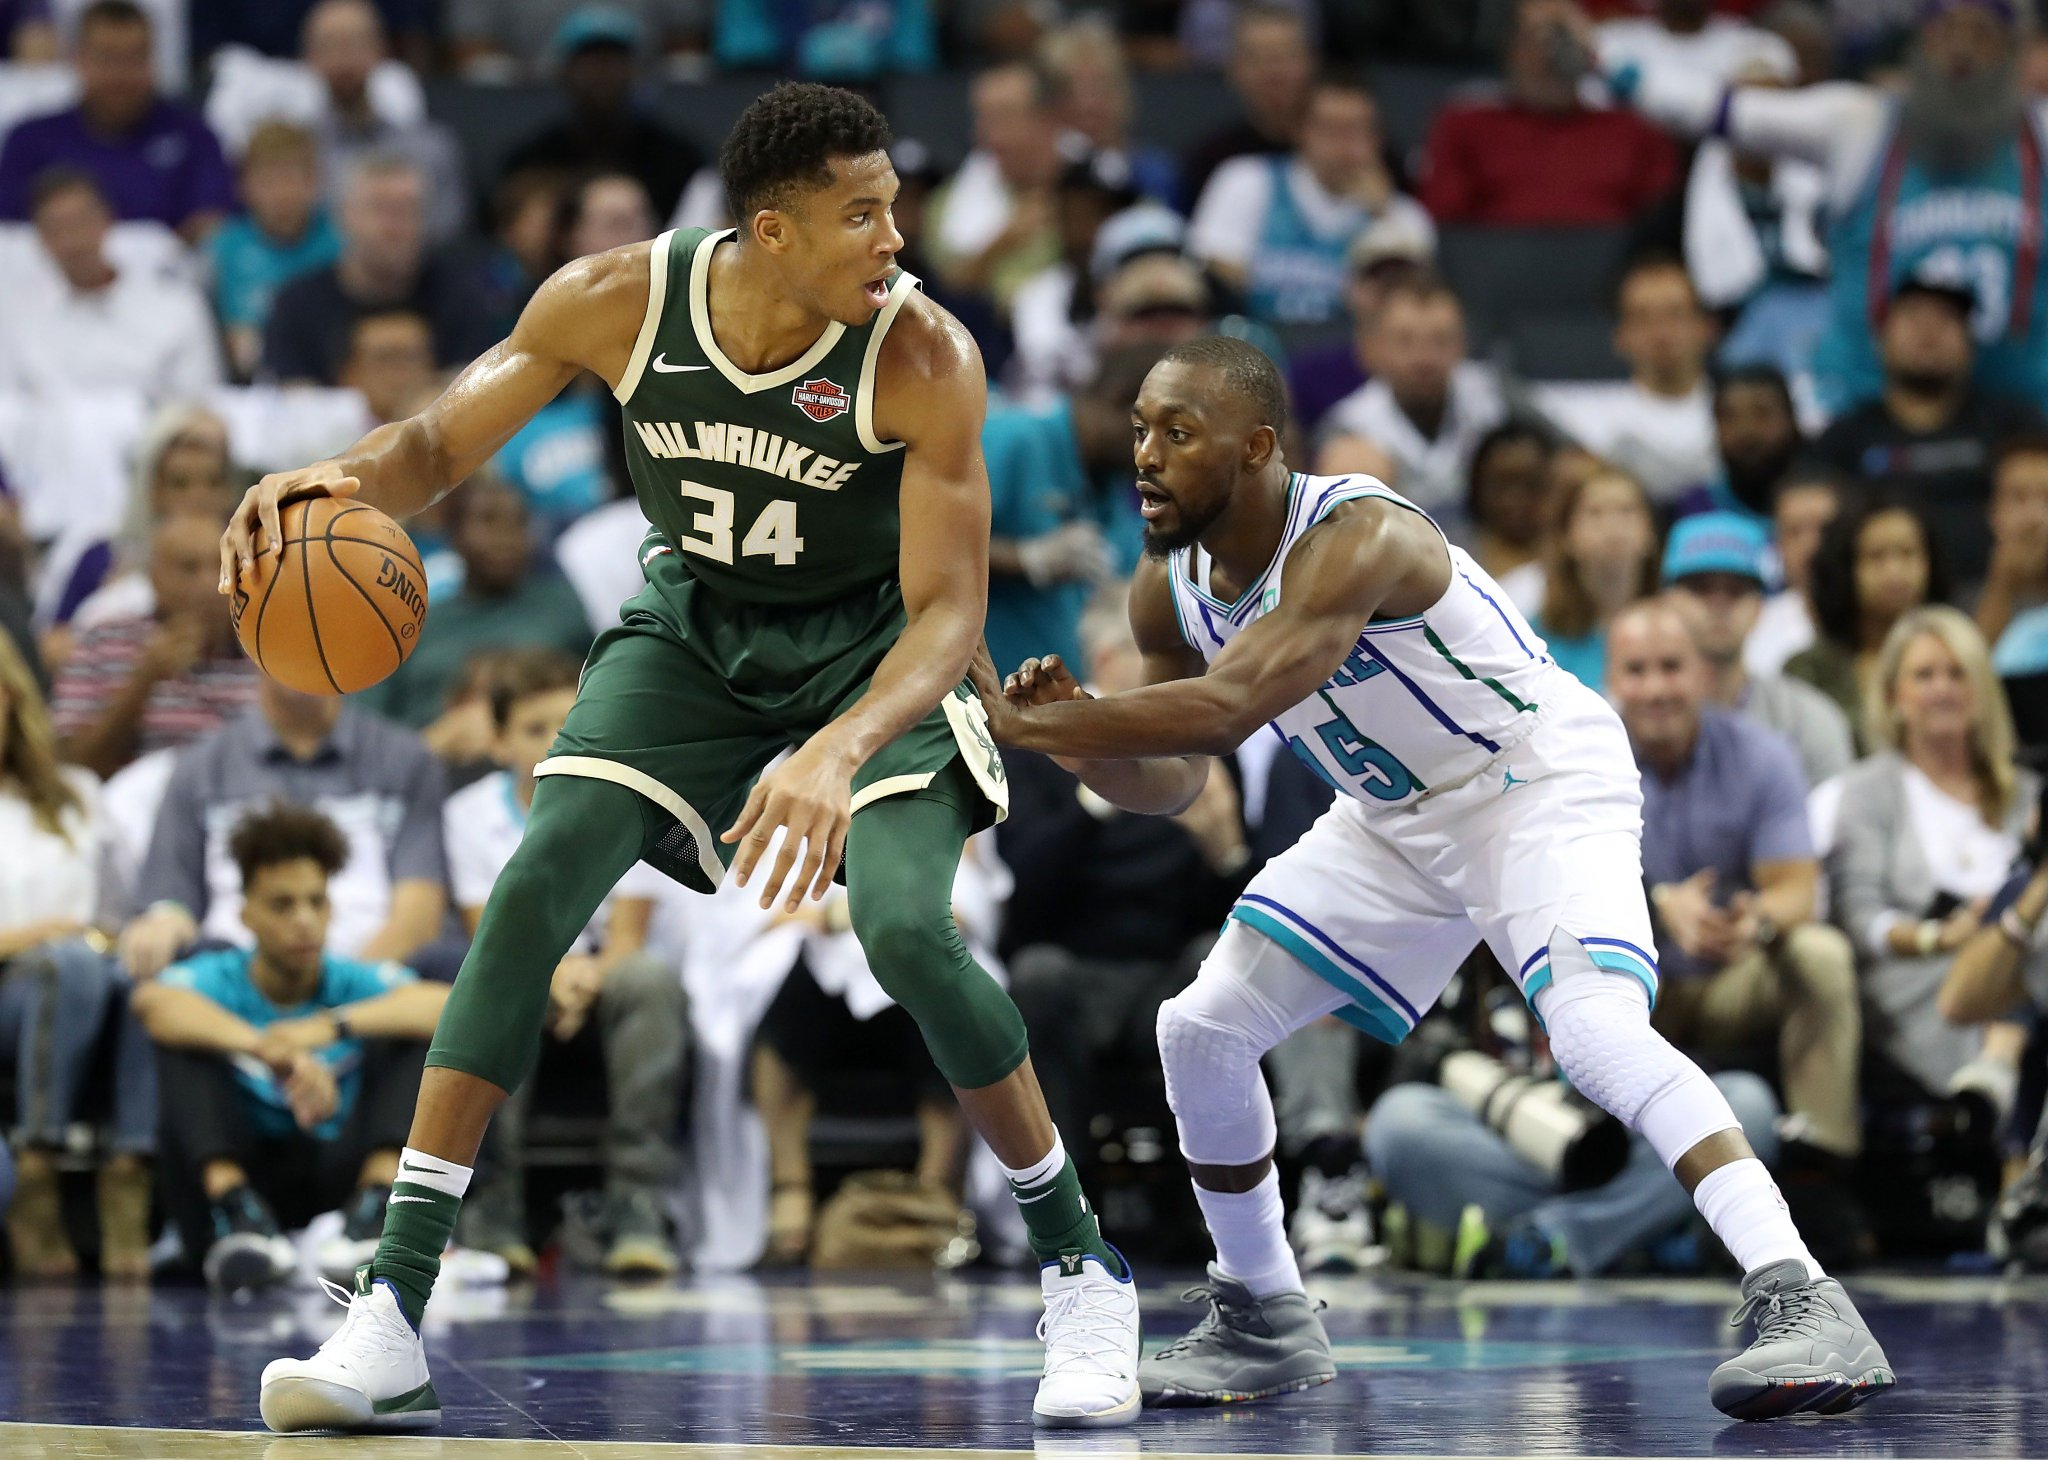 GIANNIS: 22 PTS, 18 REB, 8 AST KEMBA: 39 PTS, 7 3PM  @Bucks 110 | @hornets 105   2 minutes to play on League Pass https://t.co/lO68IbRAMN